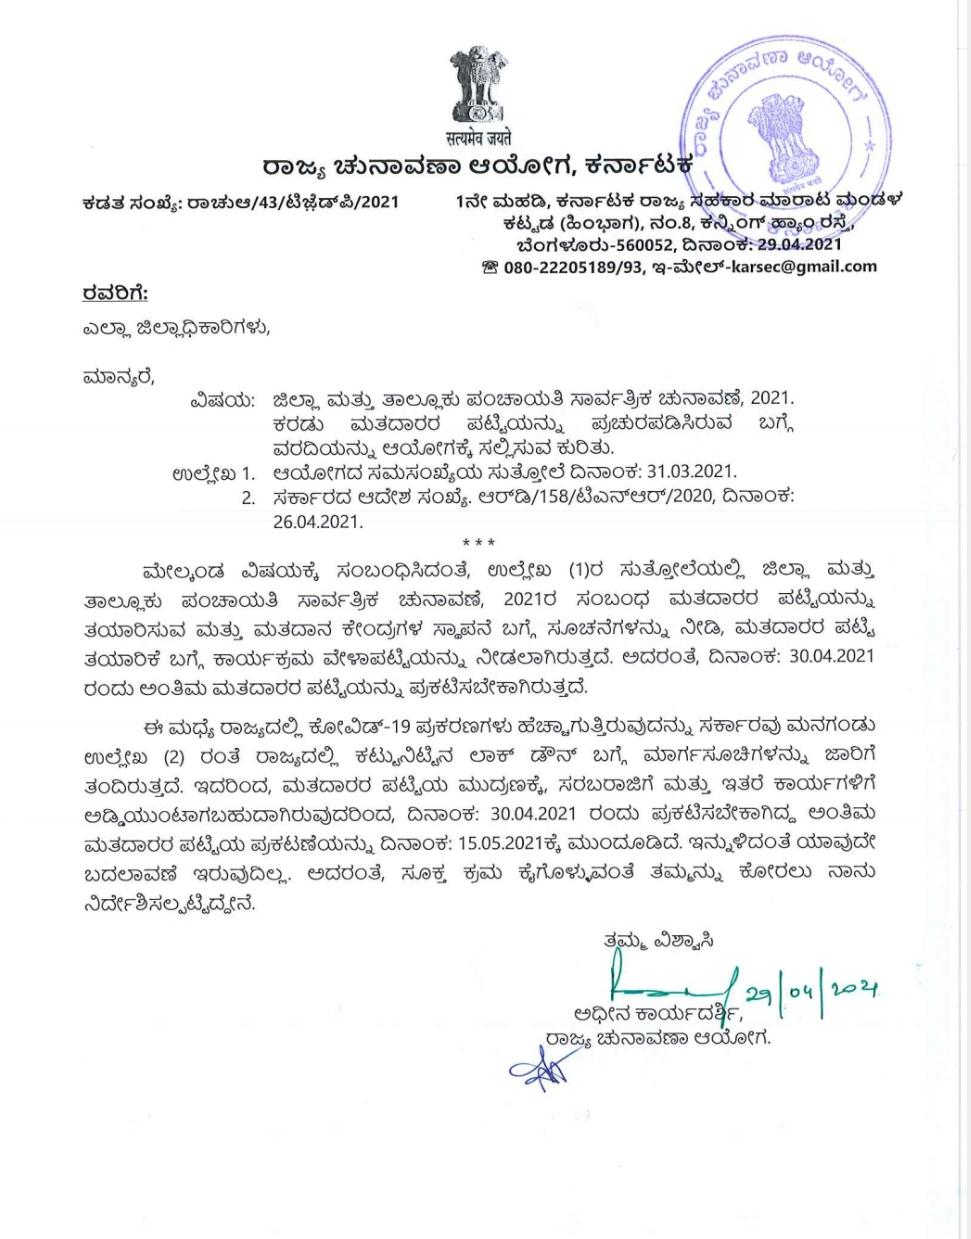 District and Taluk Panchayat General Election -20201 Report on Publication of Draft Voters List to the Commission Date: 29-04-2021